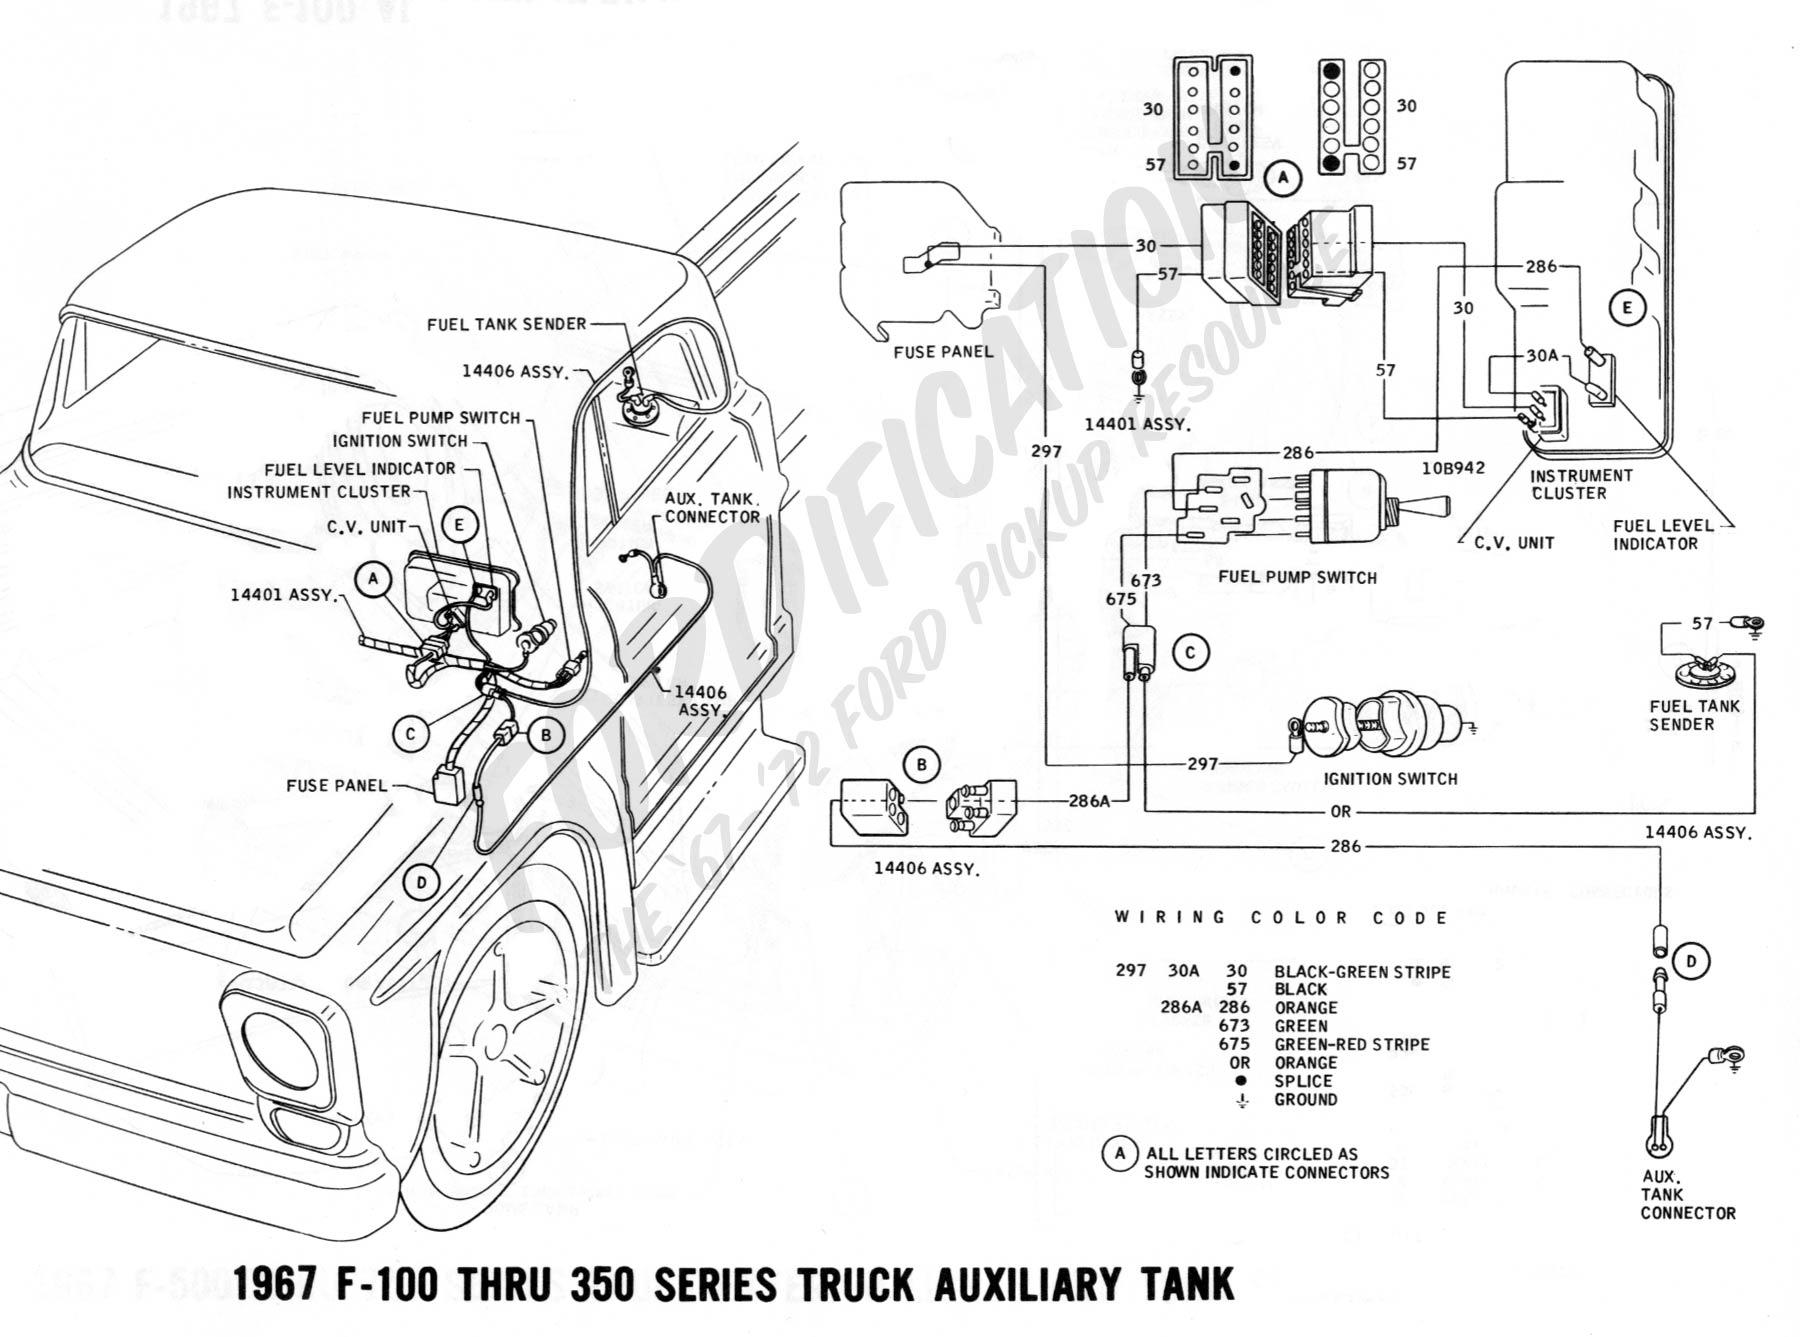 1960 Ford F100 Wiring Harness Free Download Truck Diagrams Loom Search For U2022